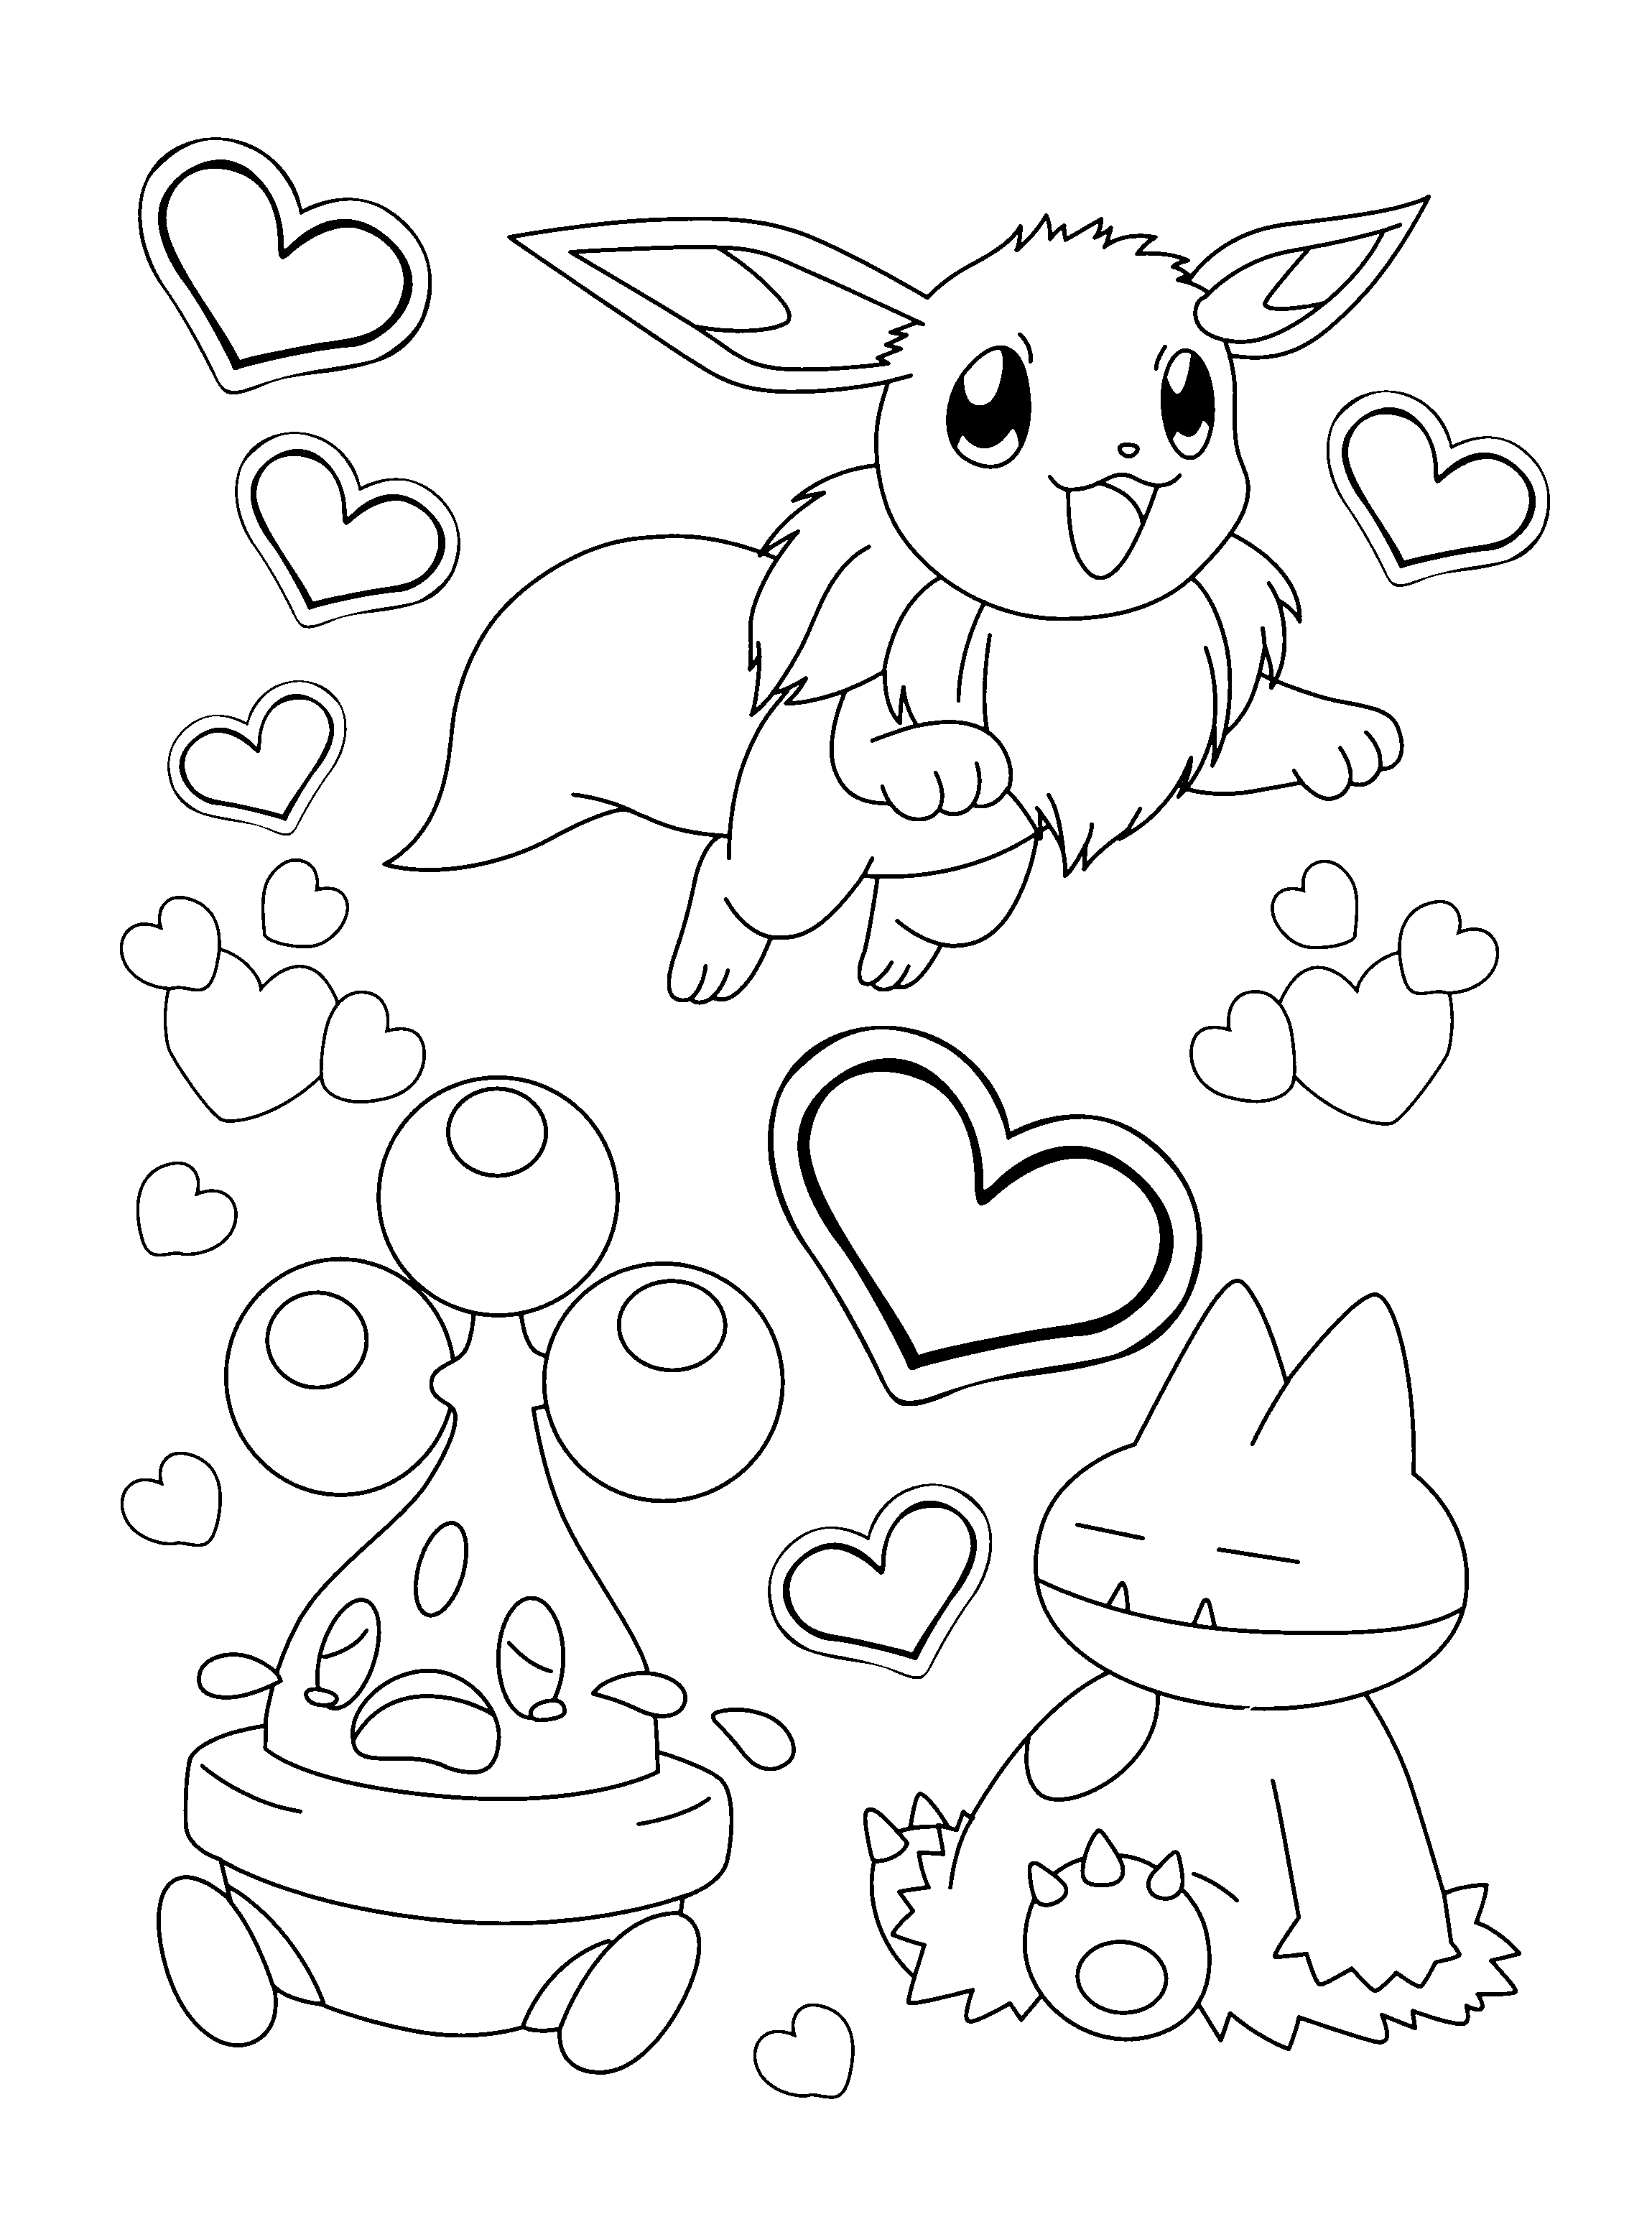 2300x3100 Dorable Grass Pokemon Coloring Pages Illustration